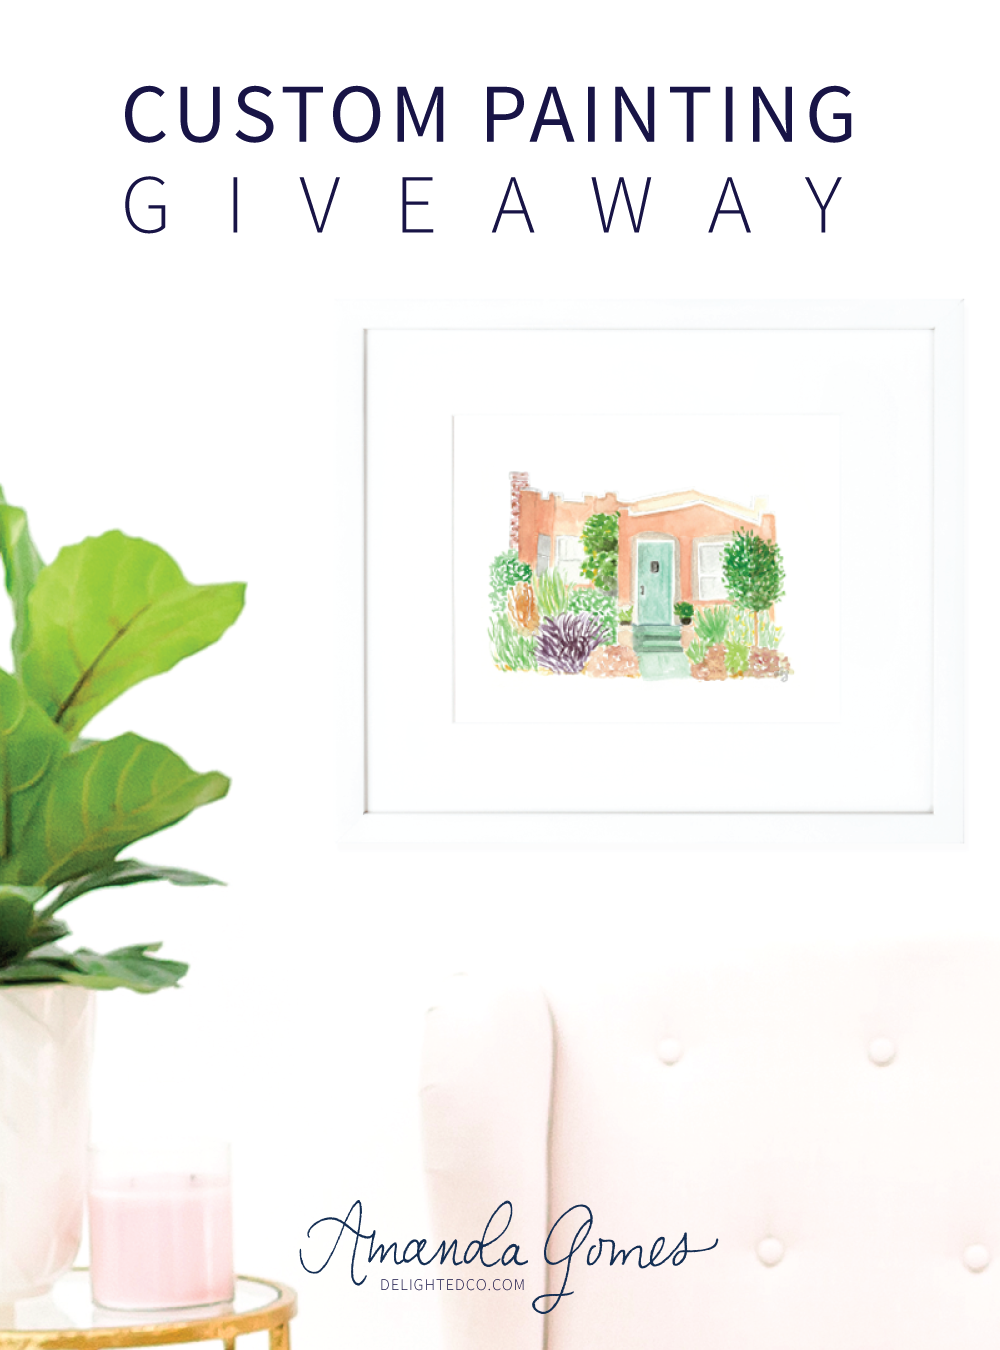 Amanda Gomes Art  • Custom Painting Giveaway